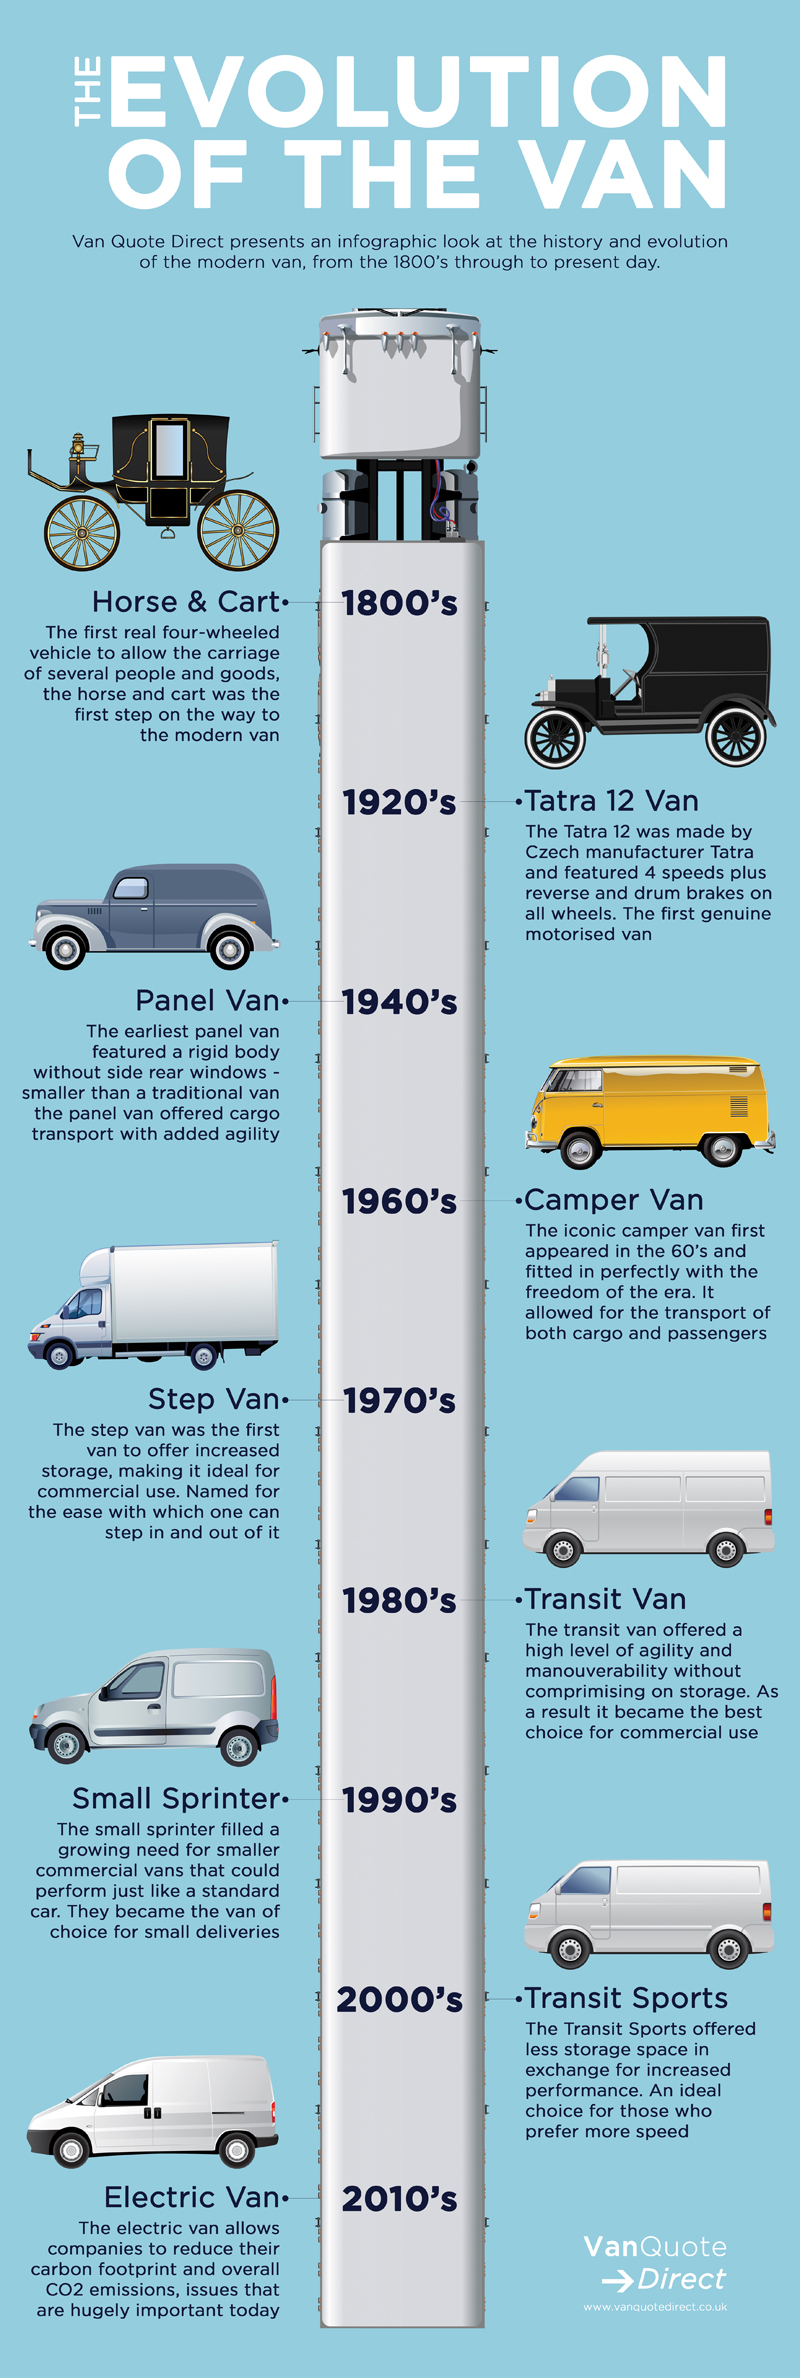 The Evolution of the Van